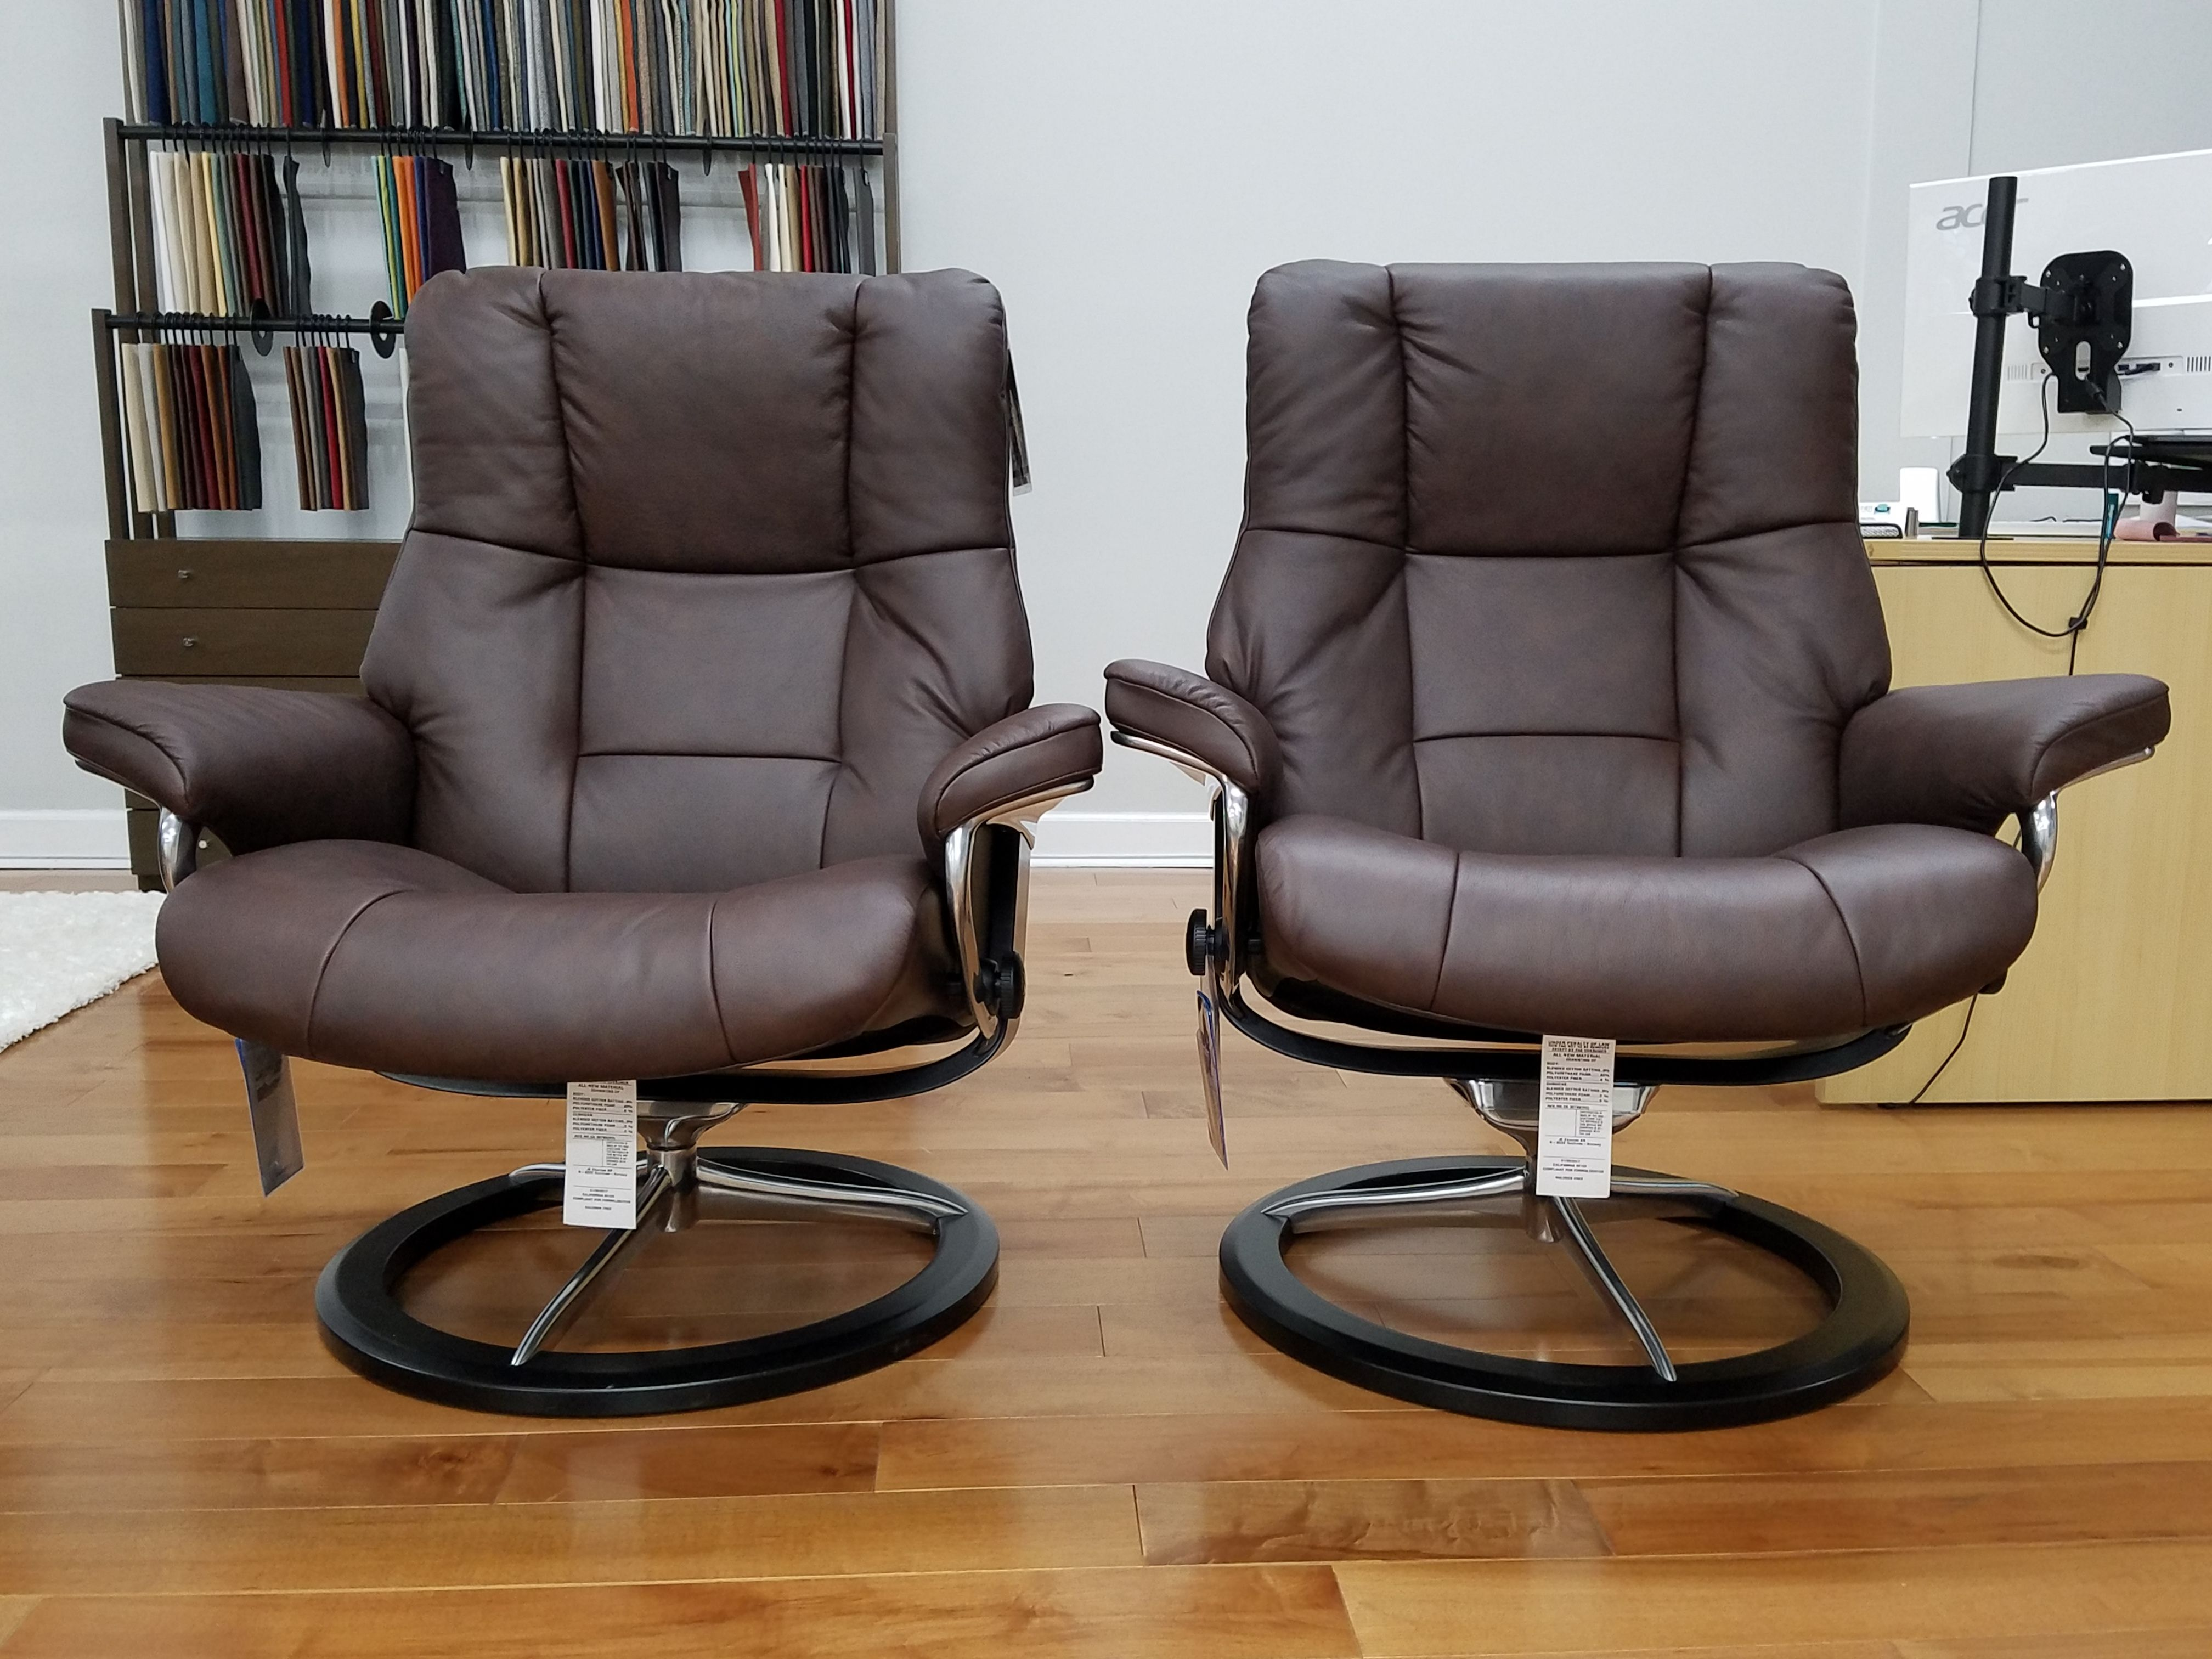 a0826d1bcd21d Stressless Mayfair Signature Base Leather  Chocolate Base  Black Stain Both  are Large Size. One on the right has an elevation kit